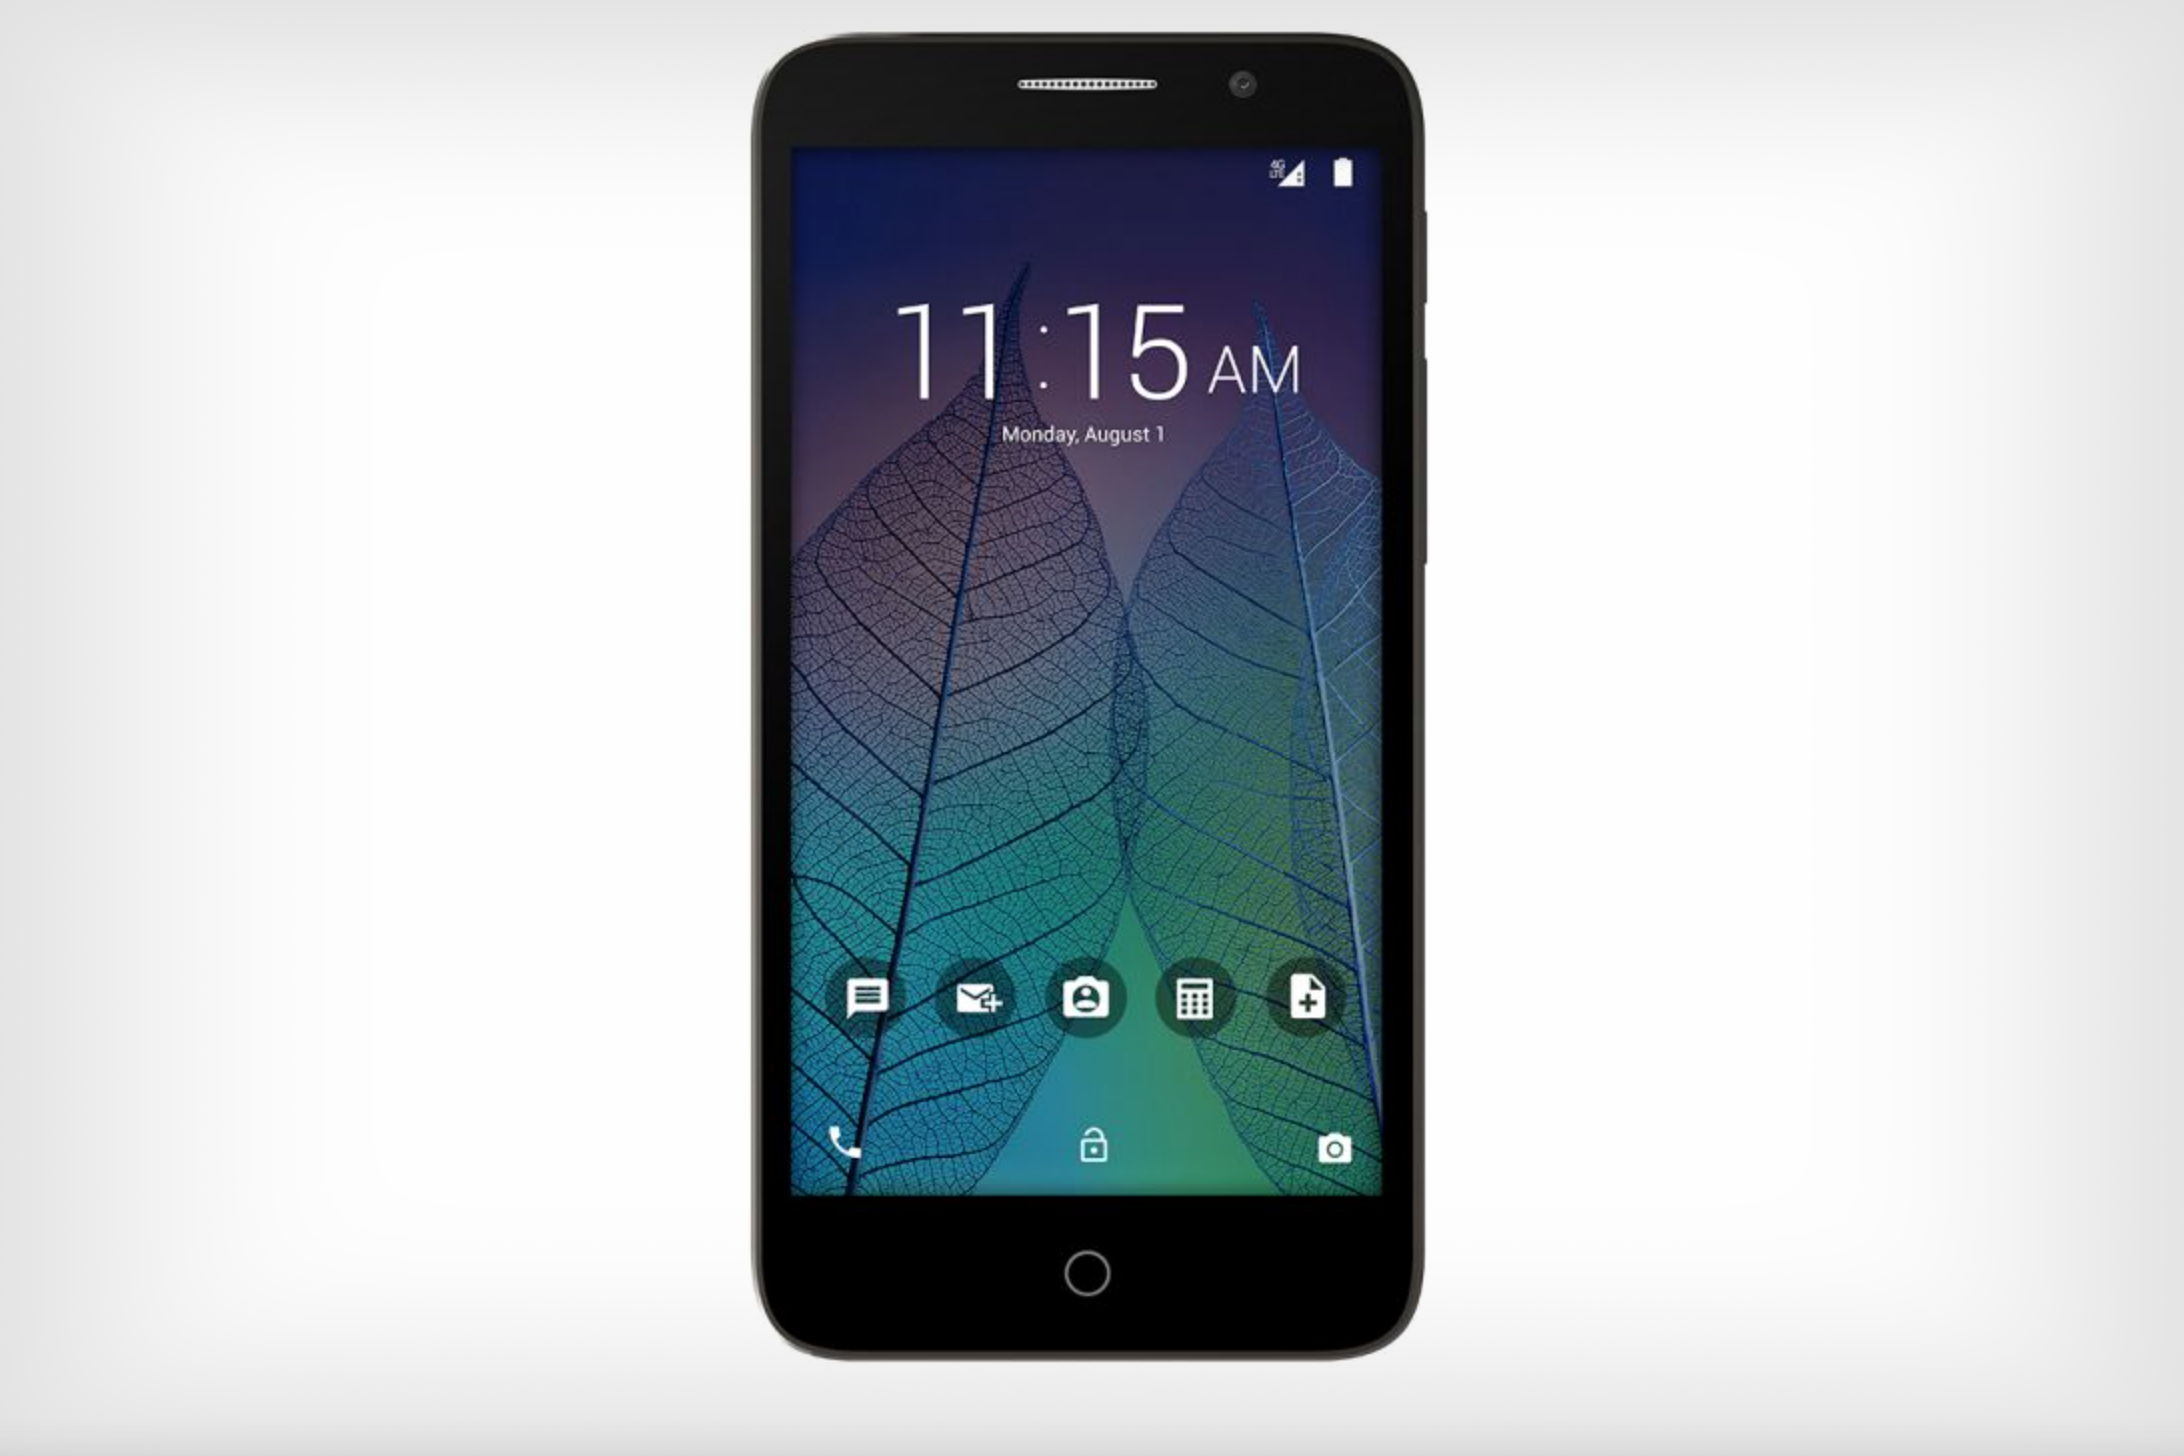 you can buy 22 alcatel trus for the price of one iphone 6s